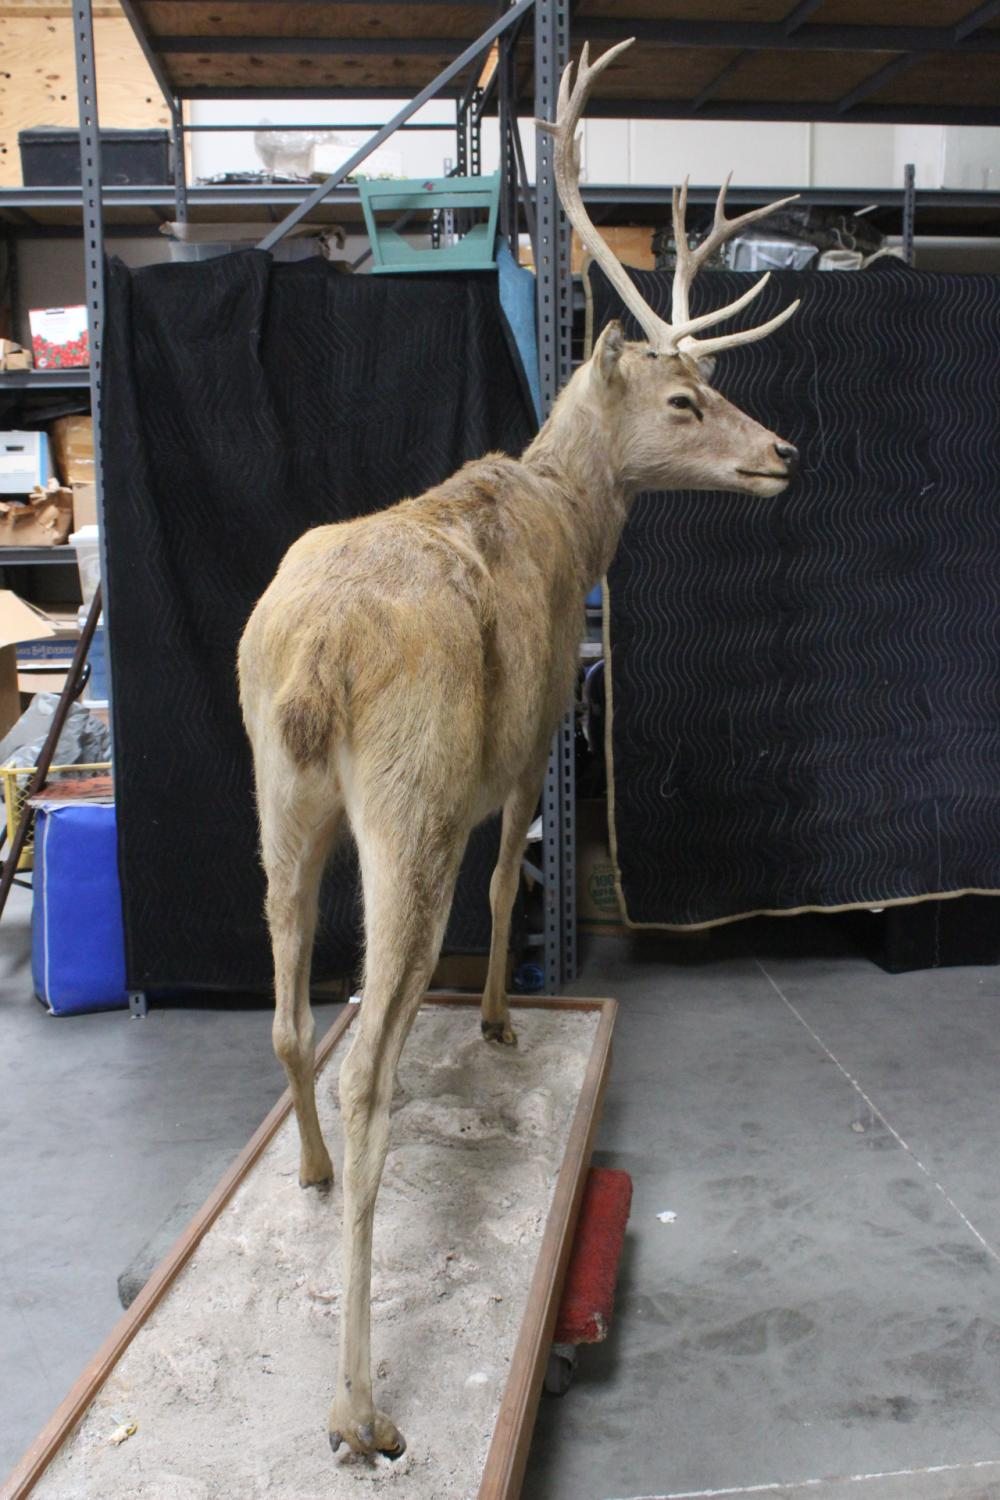 Lot 144: A large full body taxidermy of mountain goat